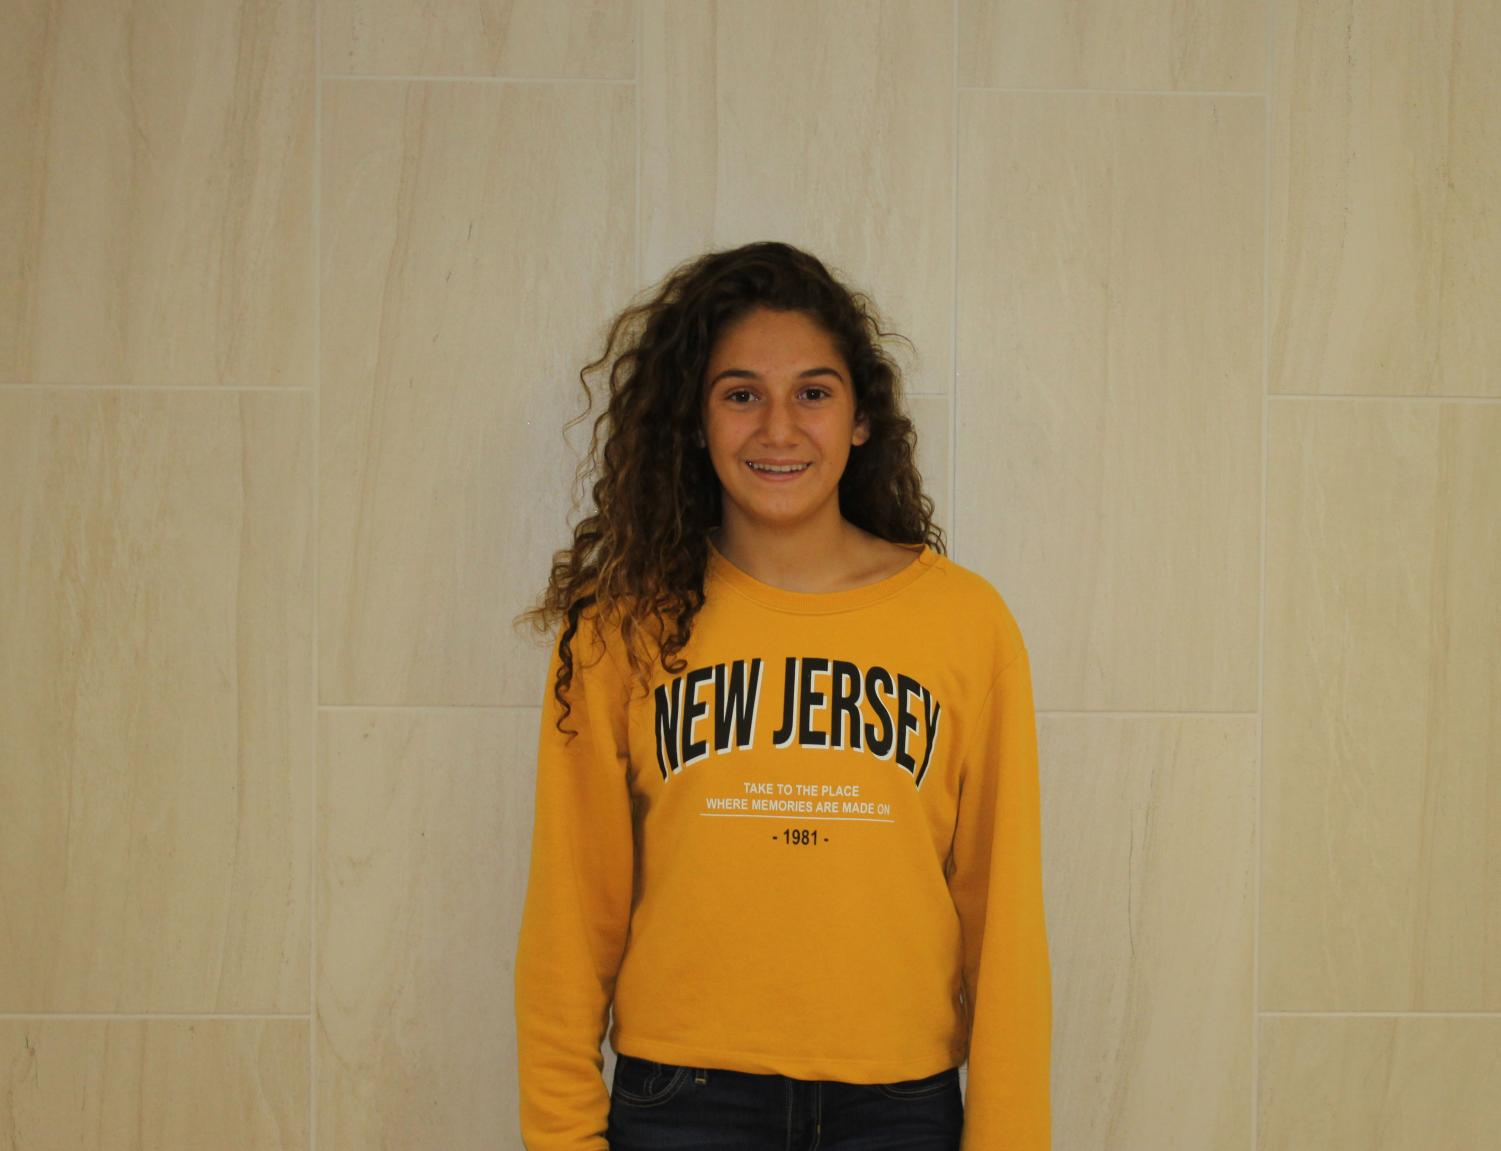 Sophomore Claudia Perez is from Spain and is enjoying her time at LCM.